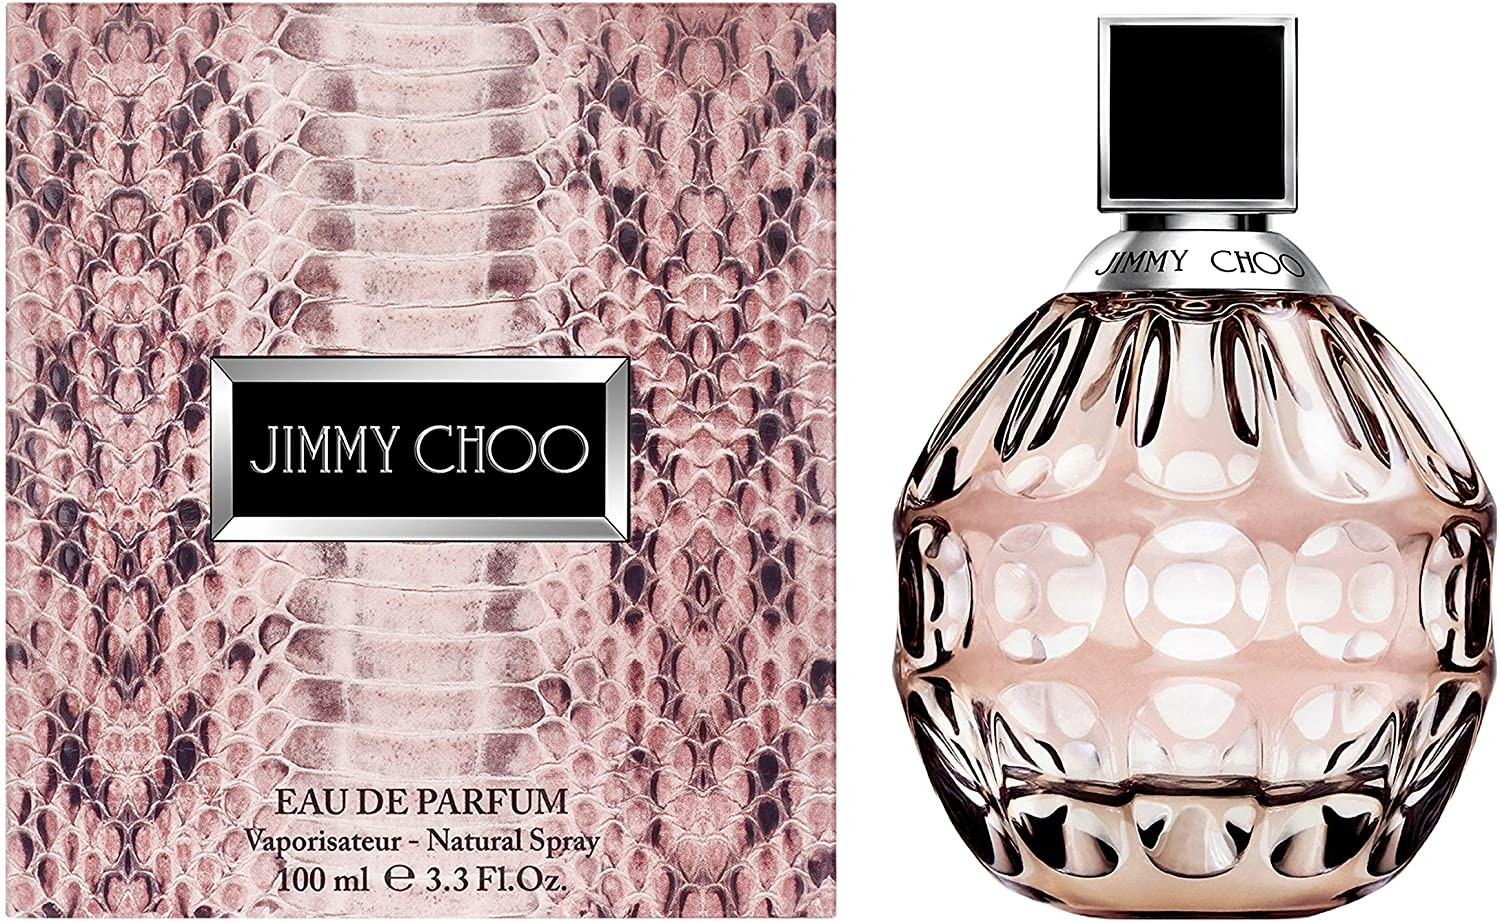 Jimmy Choo Original Eau de Parfum 100 ML